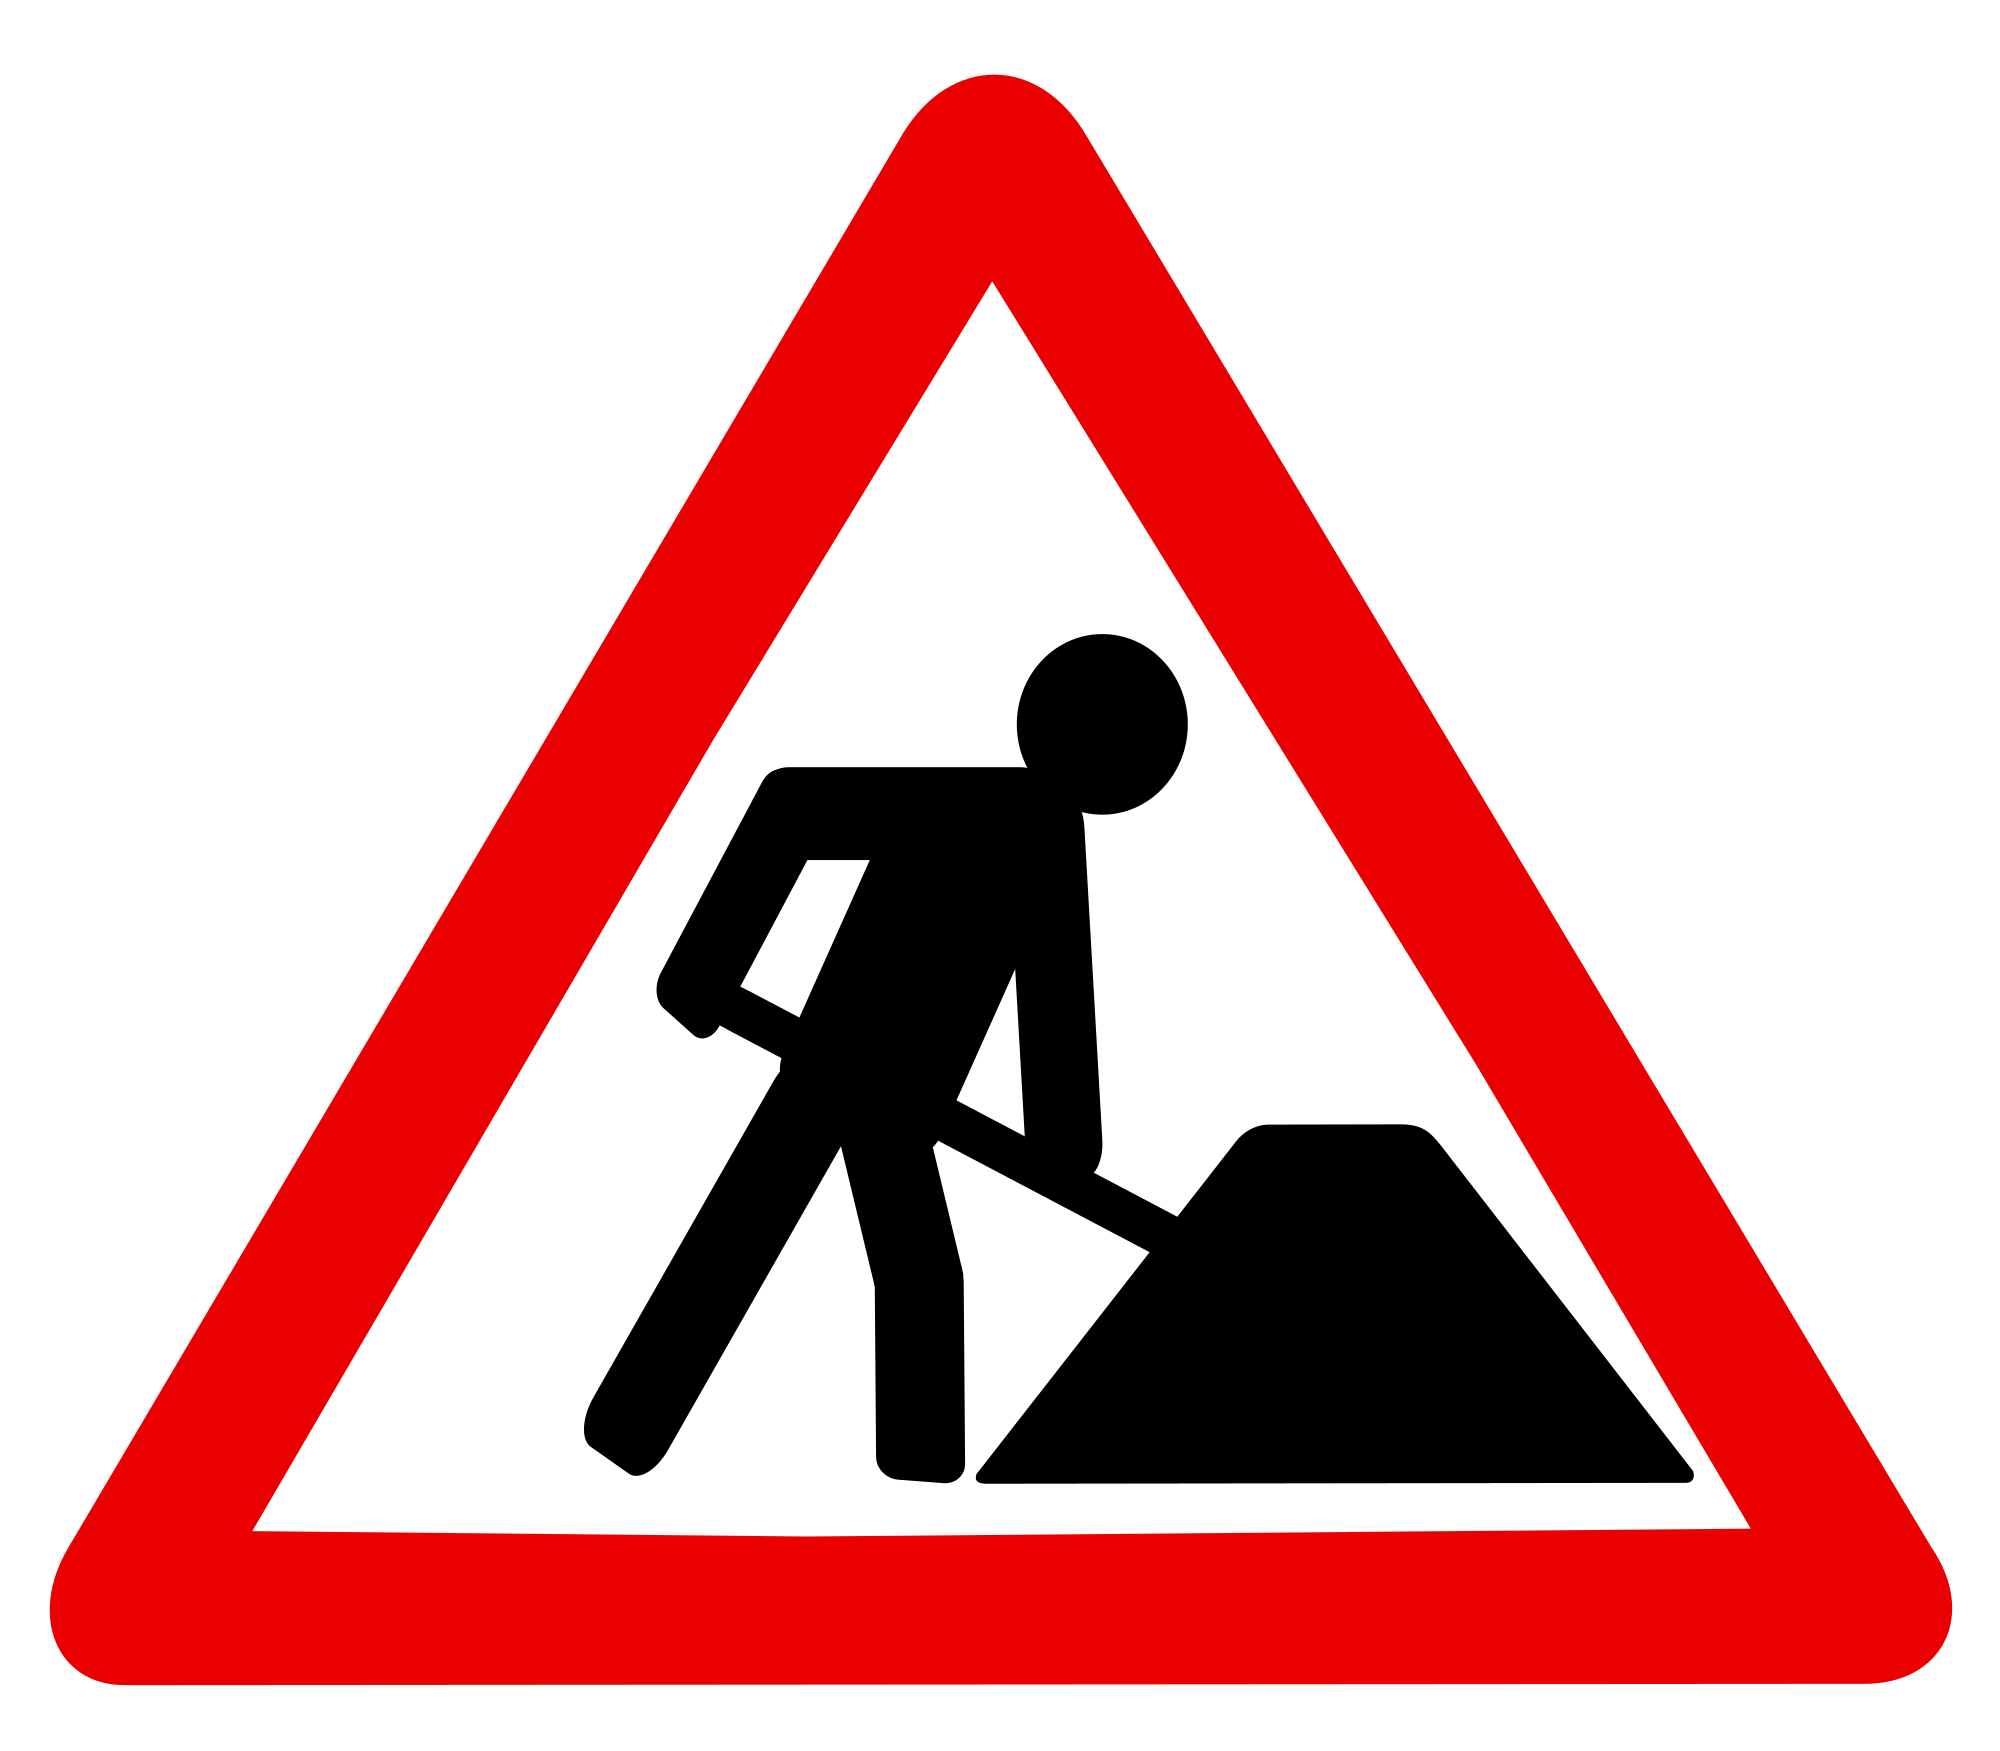 File baustelle svg wikimedia. Construction clipart construction sign